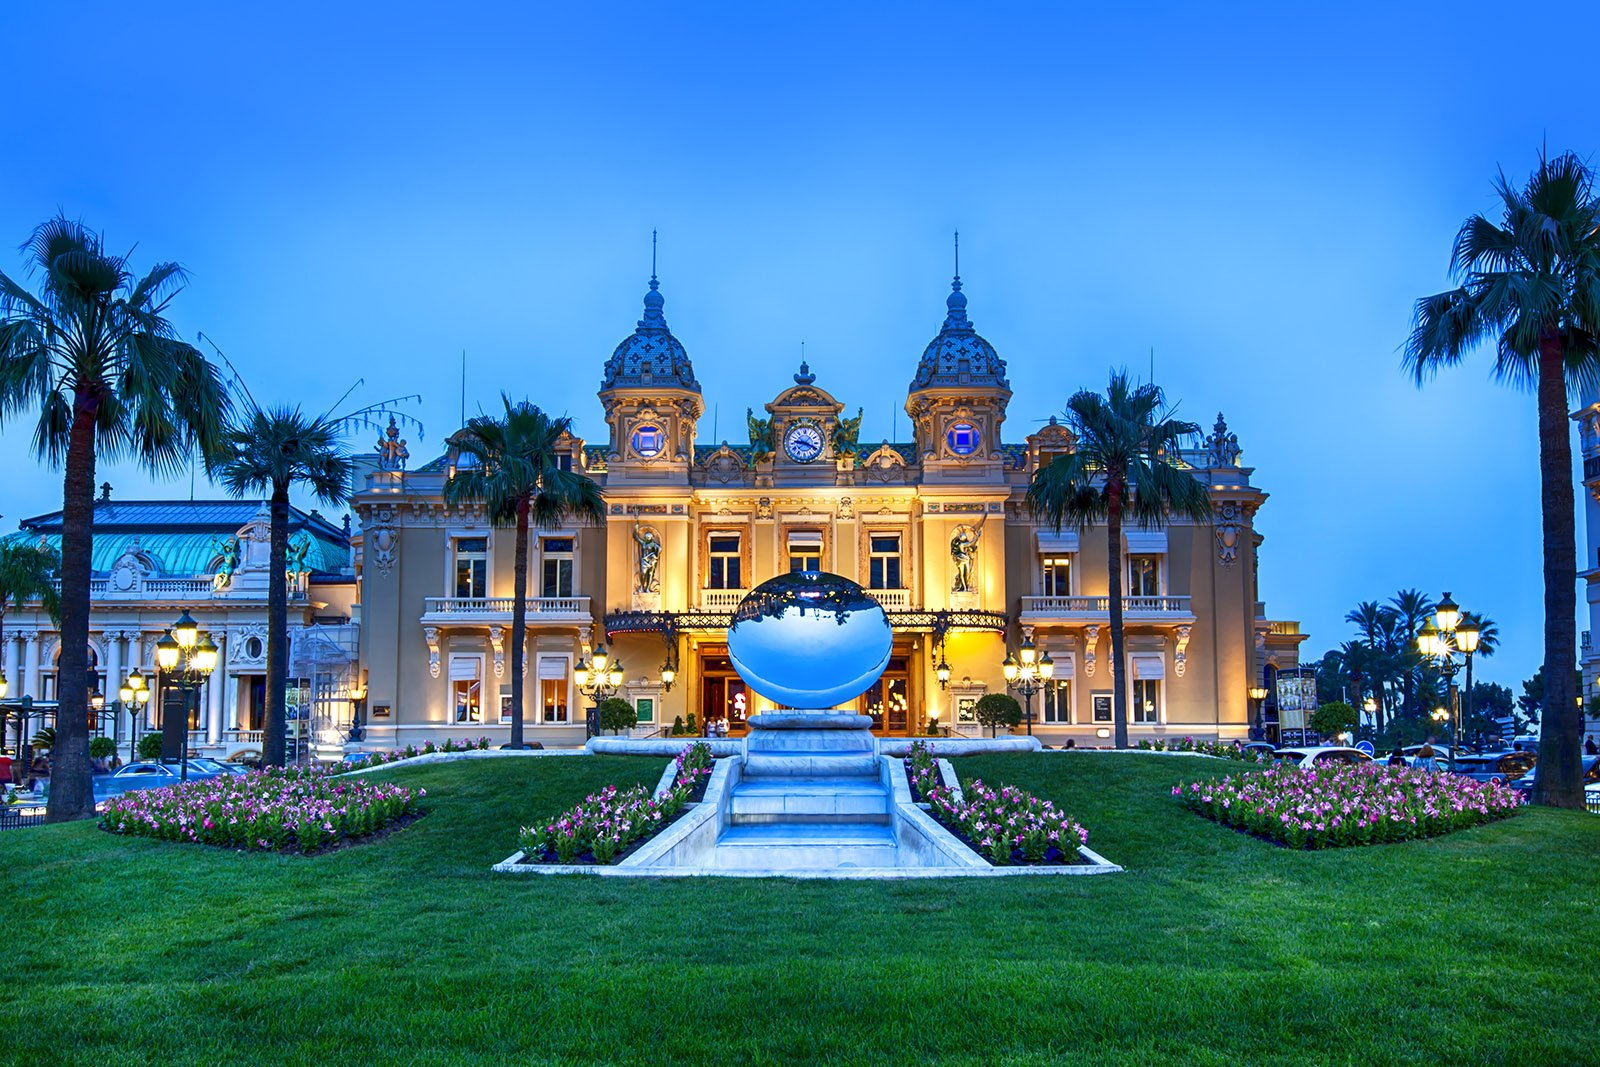 Casino de Monte-Carlo in Monaco from James Bond © Robyn Mackenzie - Shutterstock.com